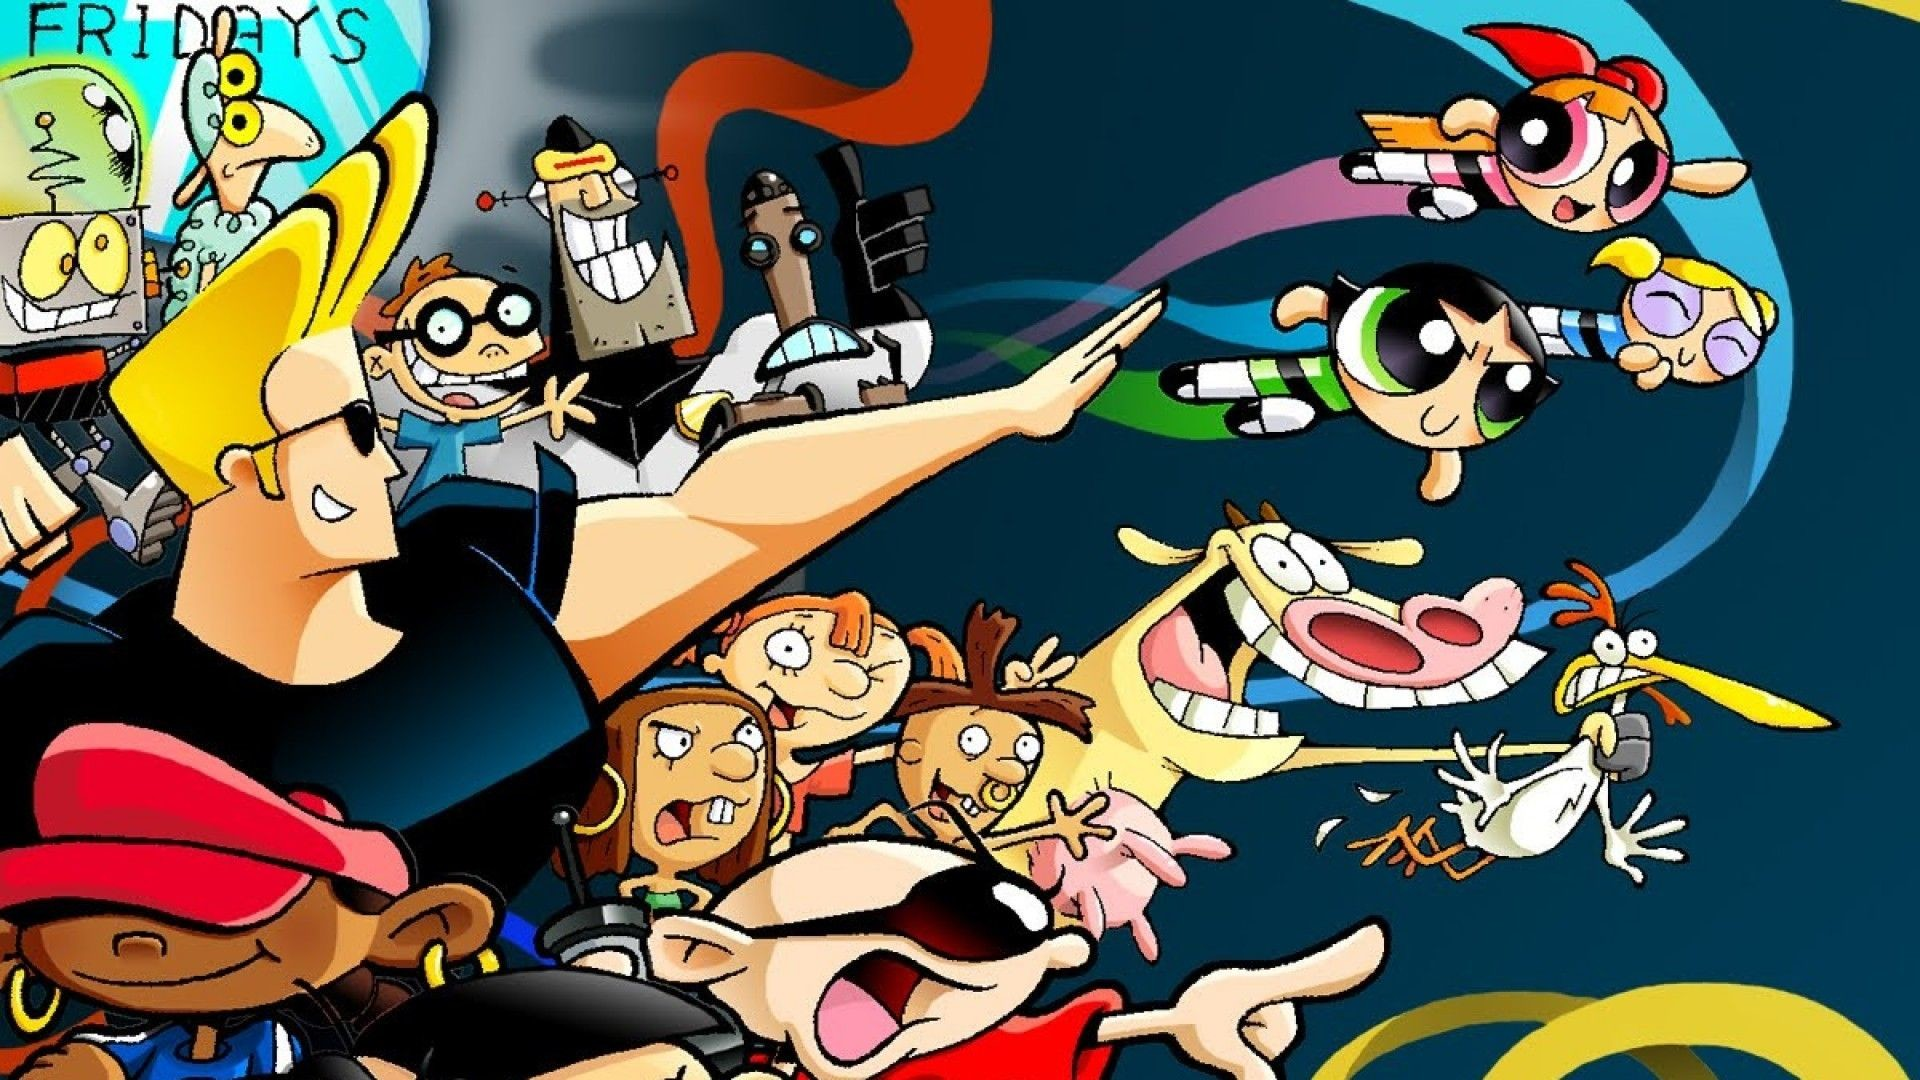 Collection of Cartoon Wallpapers In Hd on Spyder Wallpapers New HD Cartoon  Wallpapers Wallpapers)